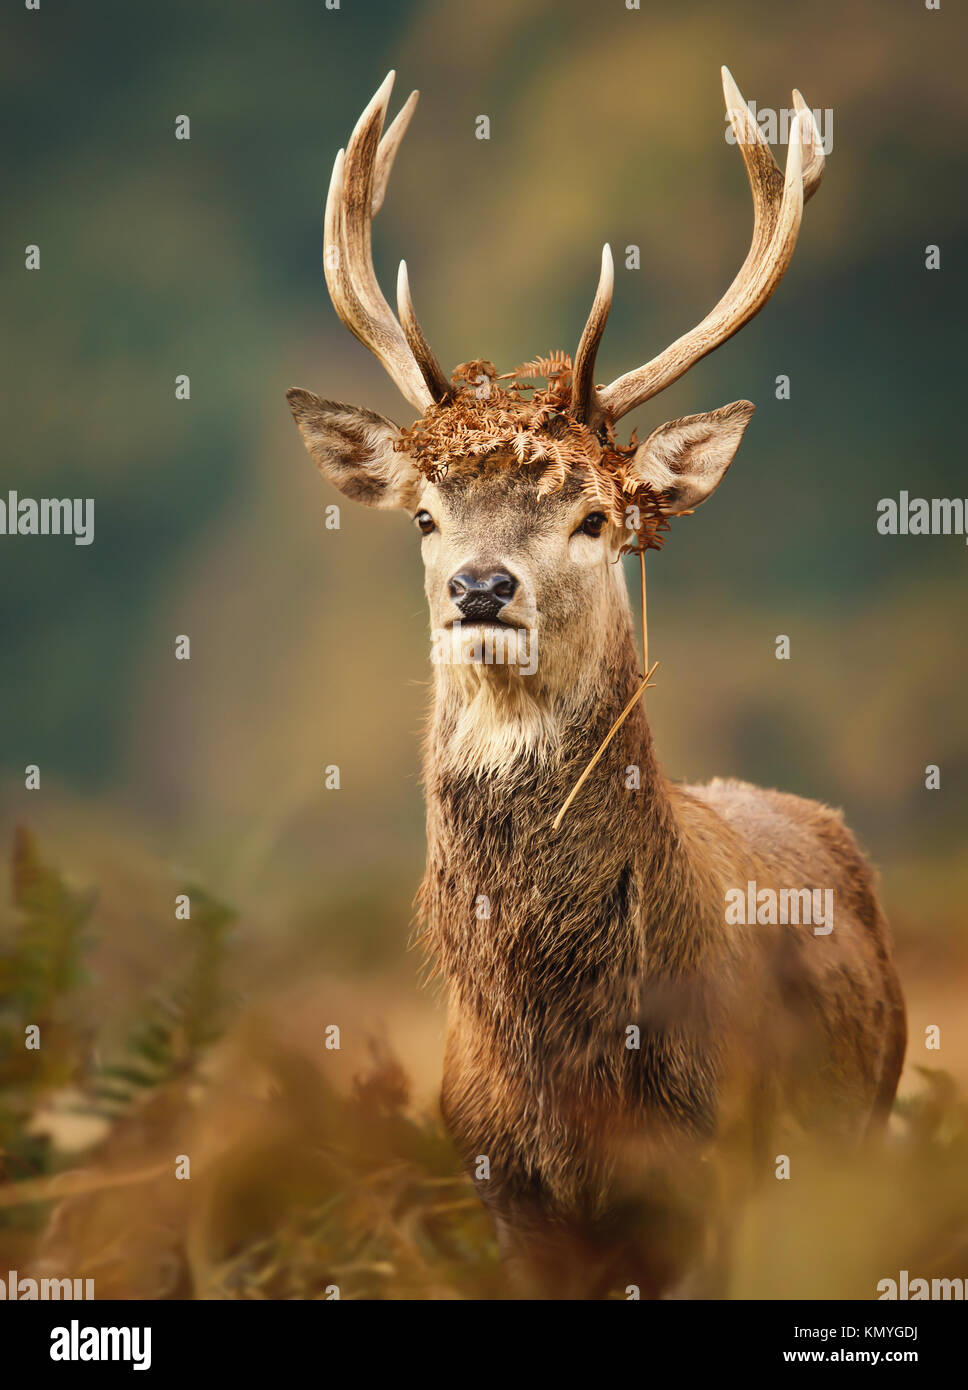 Isolated young red deer stag with a crown during the rutting season in autumn - Stock Image